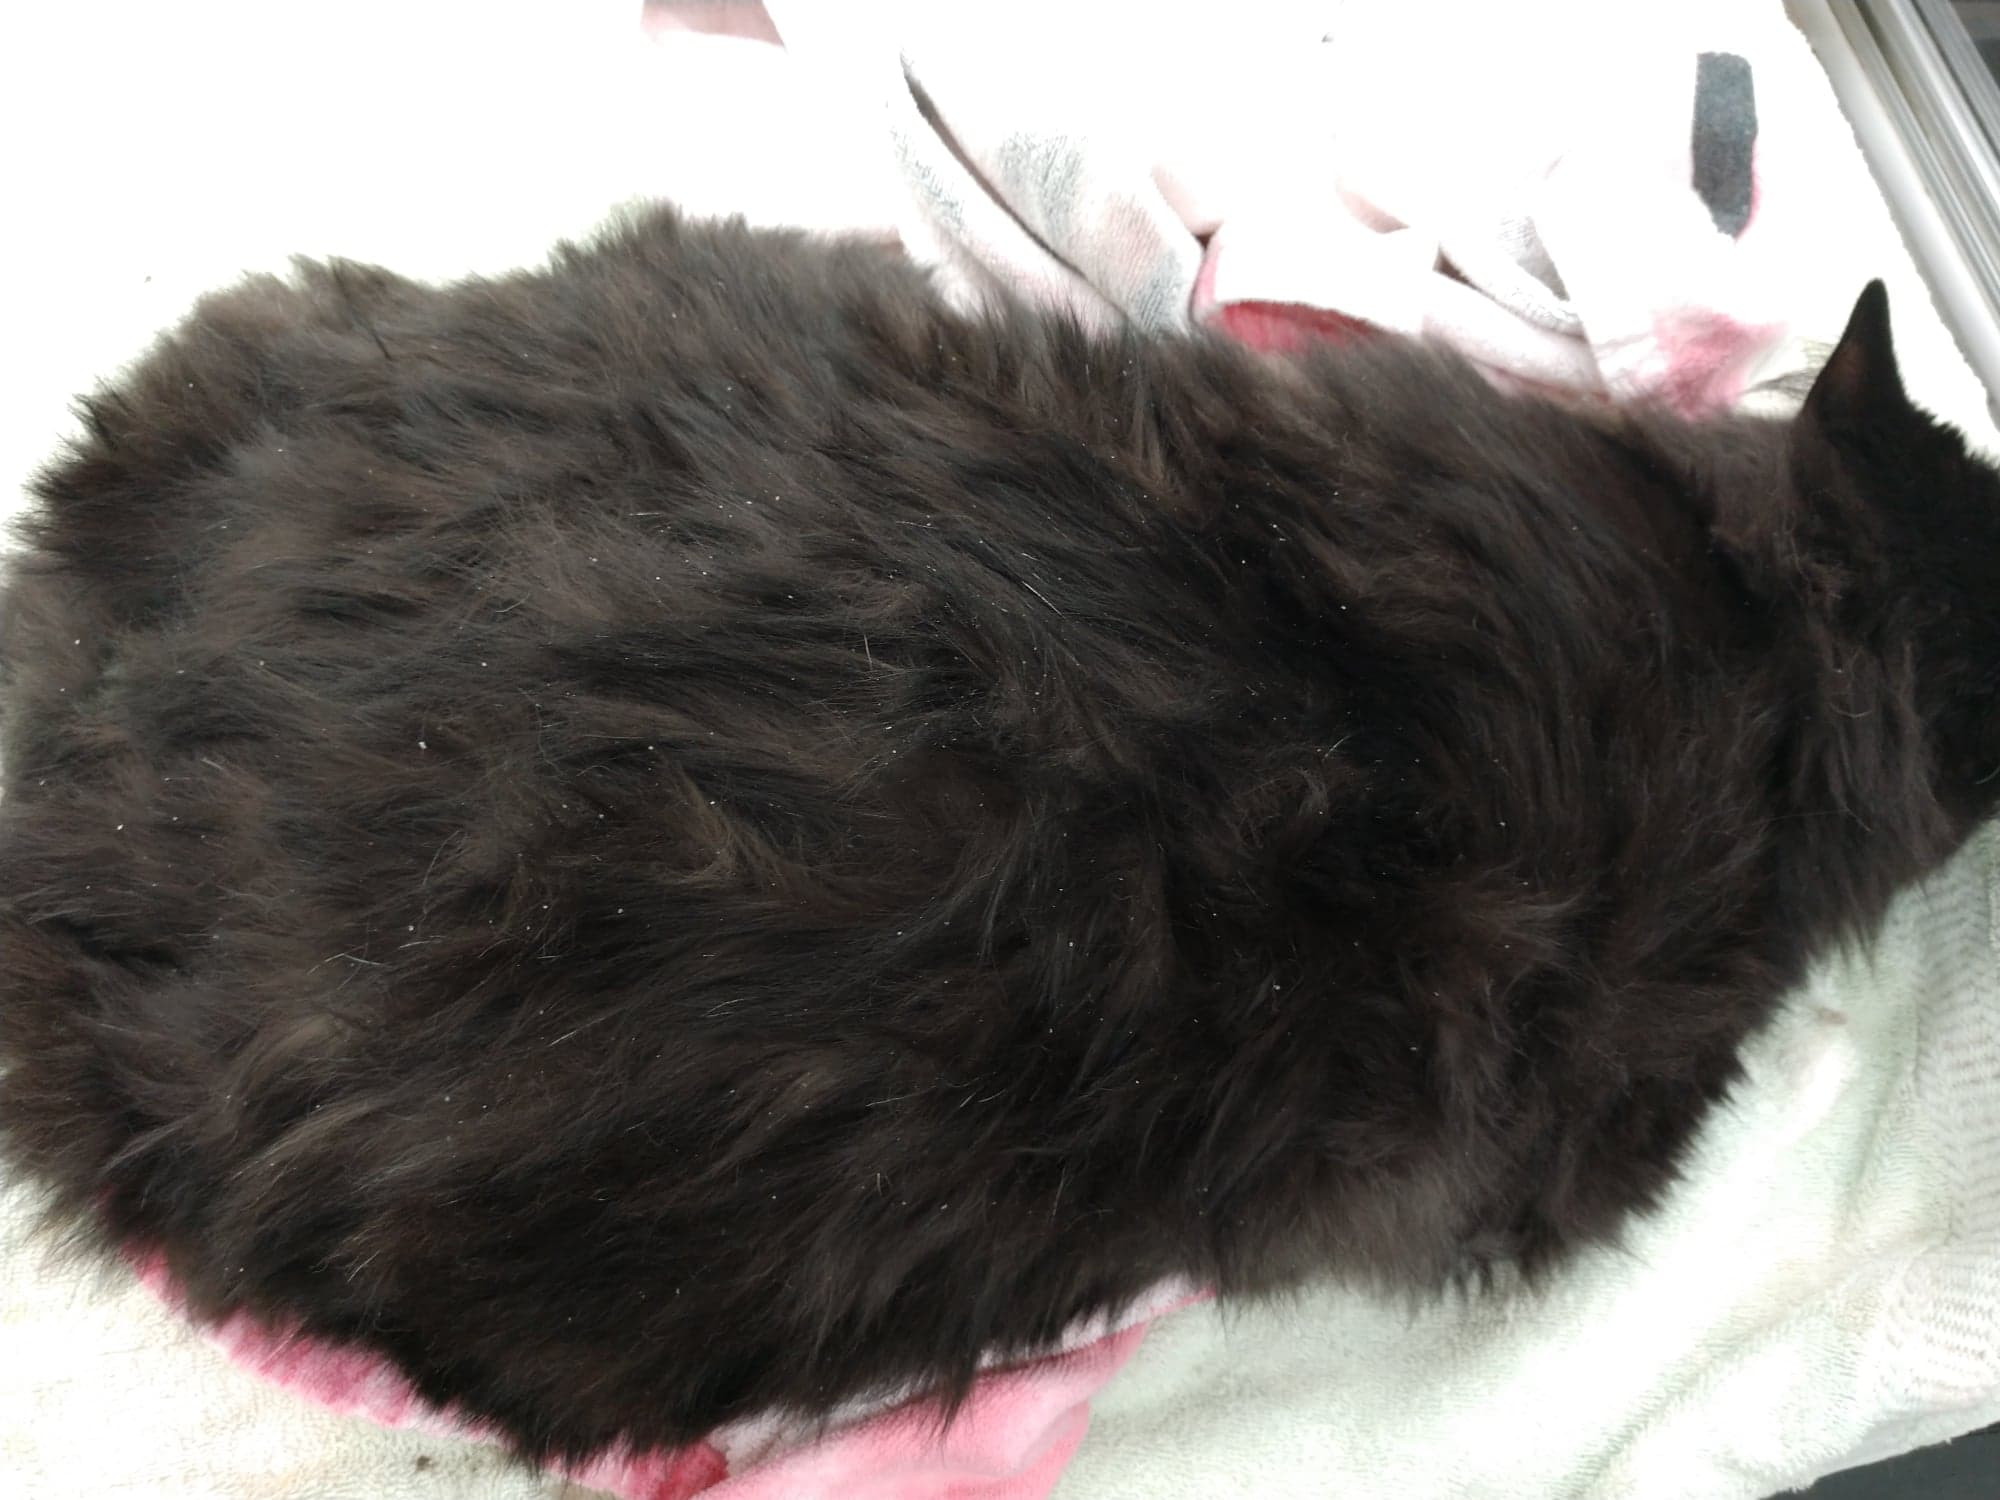 Before kitty. Greasy with mats and dandruff, poopy butt and overgrown nails